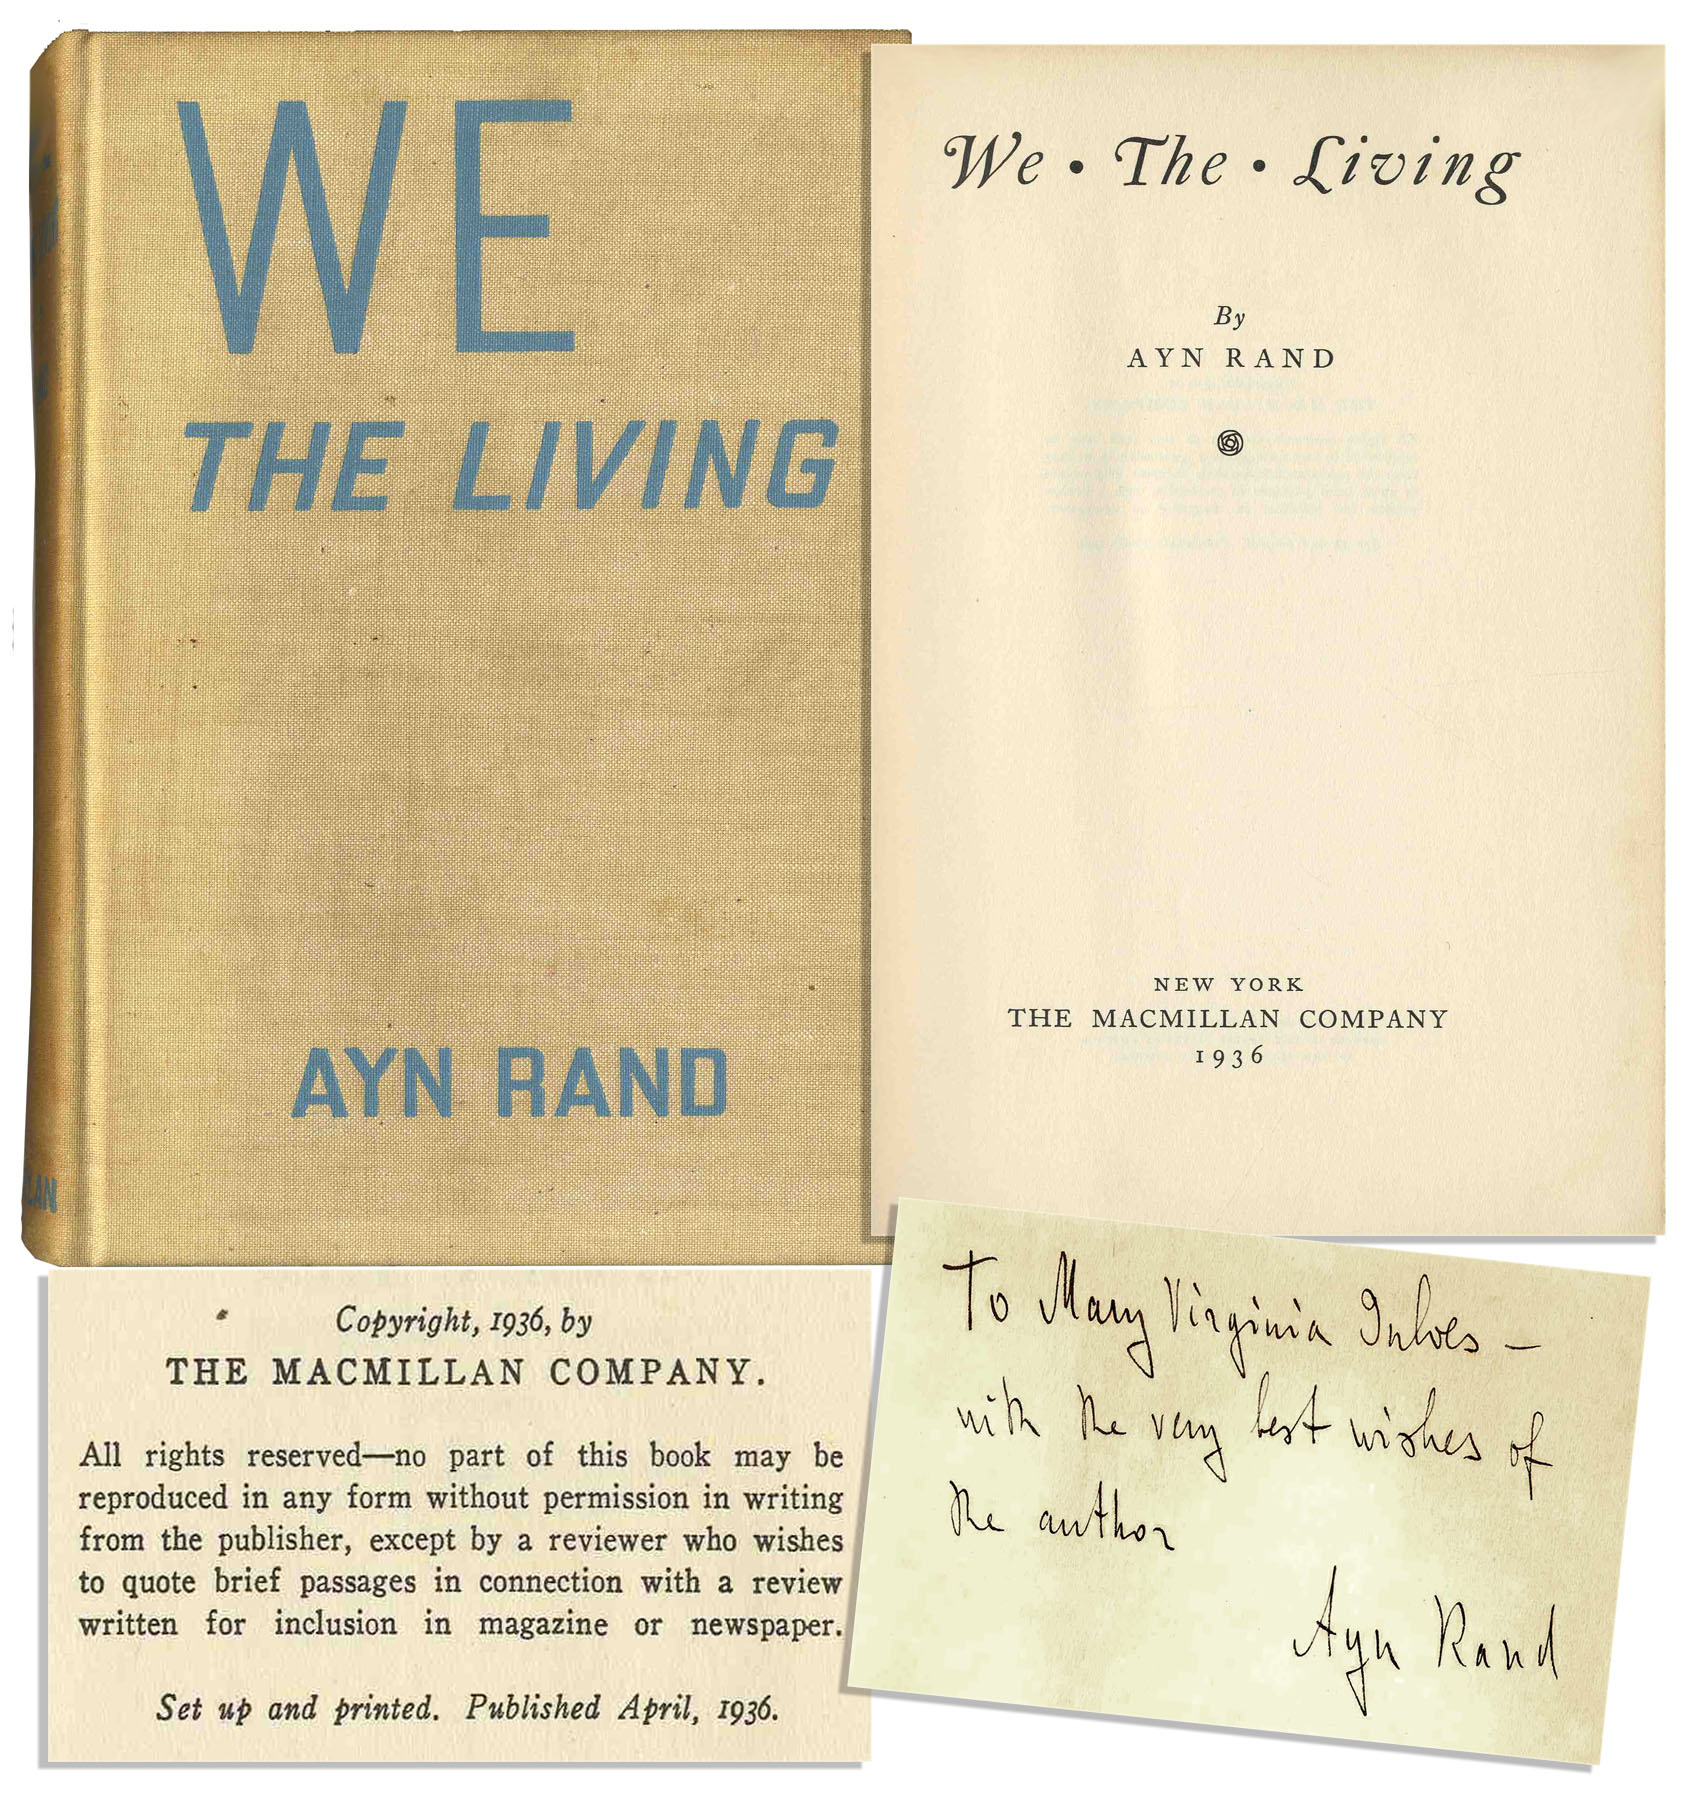 ayn essay living rands we Críticas with his edited collections of essays on ayn rand's novels, professor mayhew has set a new standard for scholarship on these important and works, which have too often been ignored.